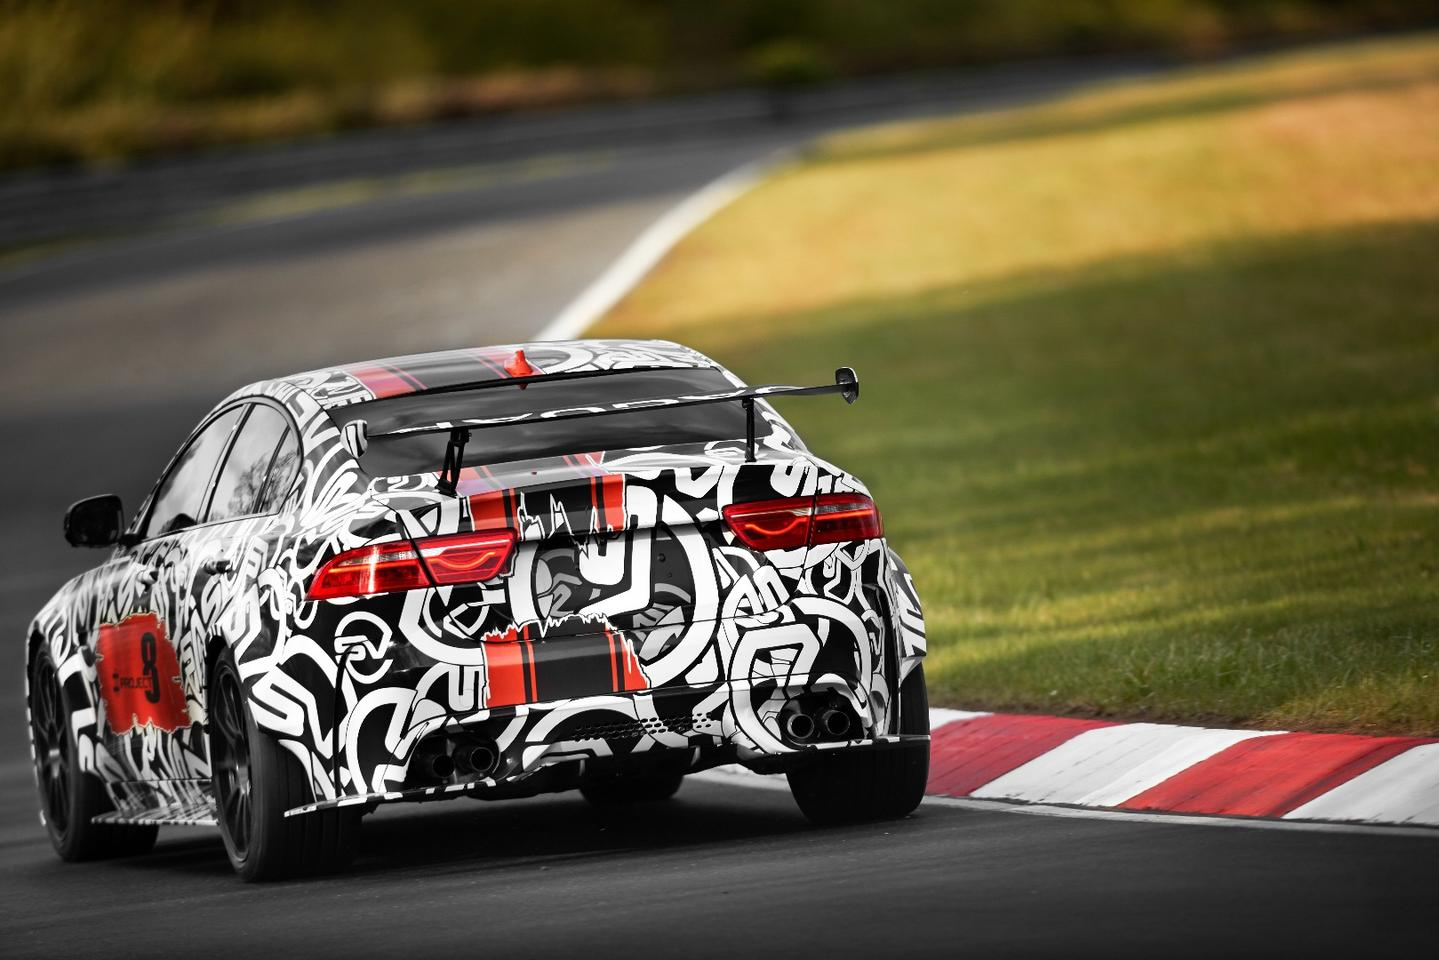 The Jaguar XE SV Project 8 takes on the Nurburgring